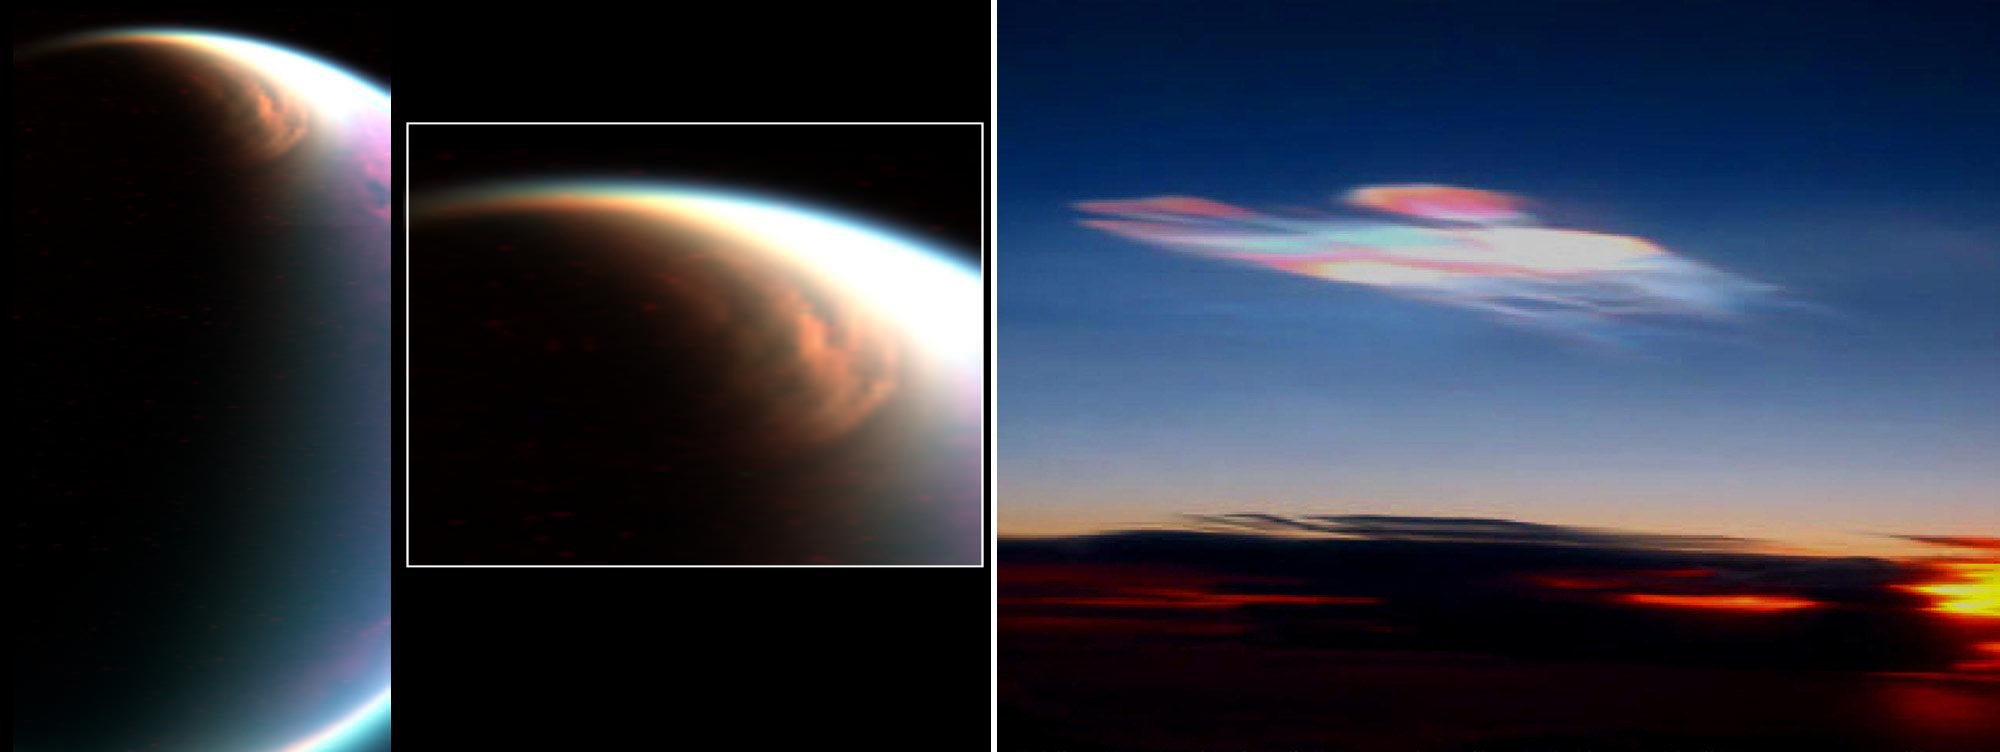 Polar clouds, made of methane, on Titan (left) compared with polar clouds on Earth (right), which are made of water or water ice.